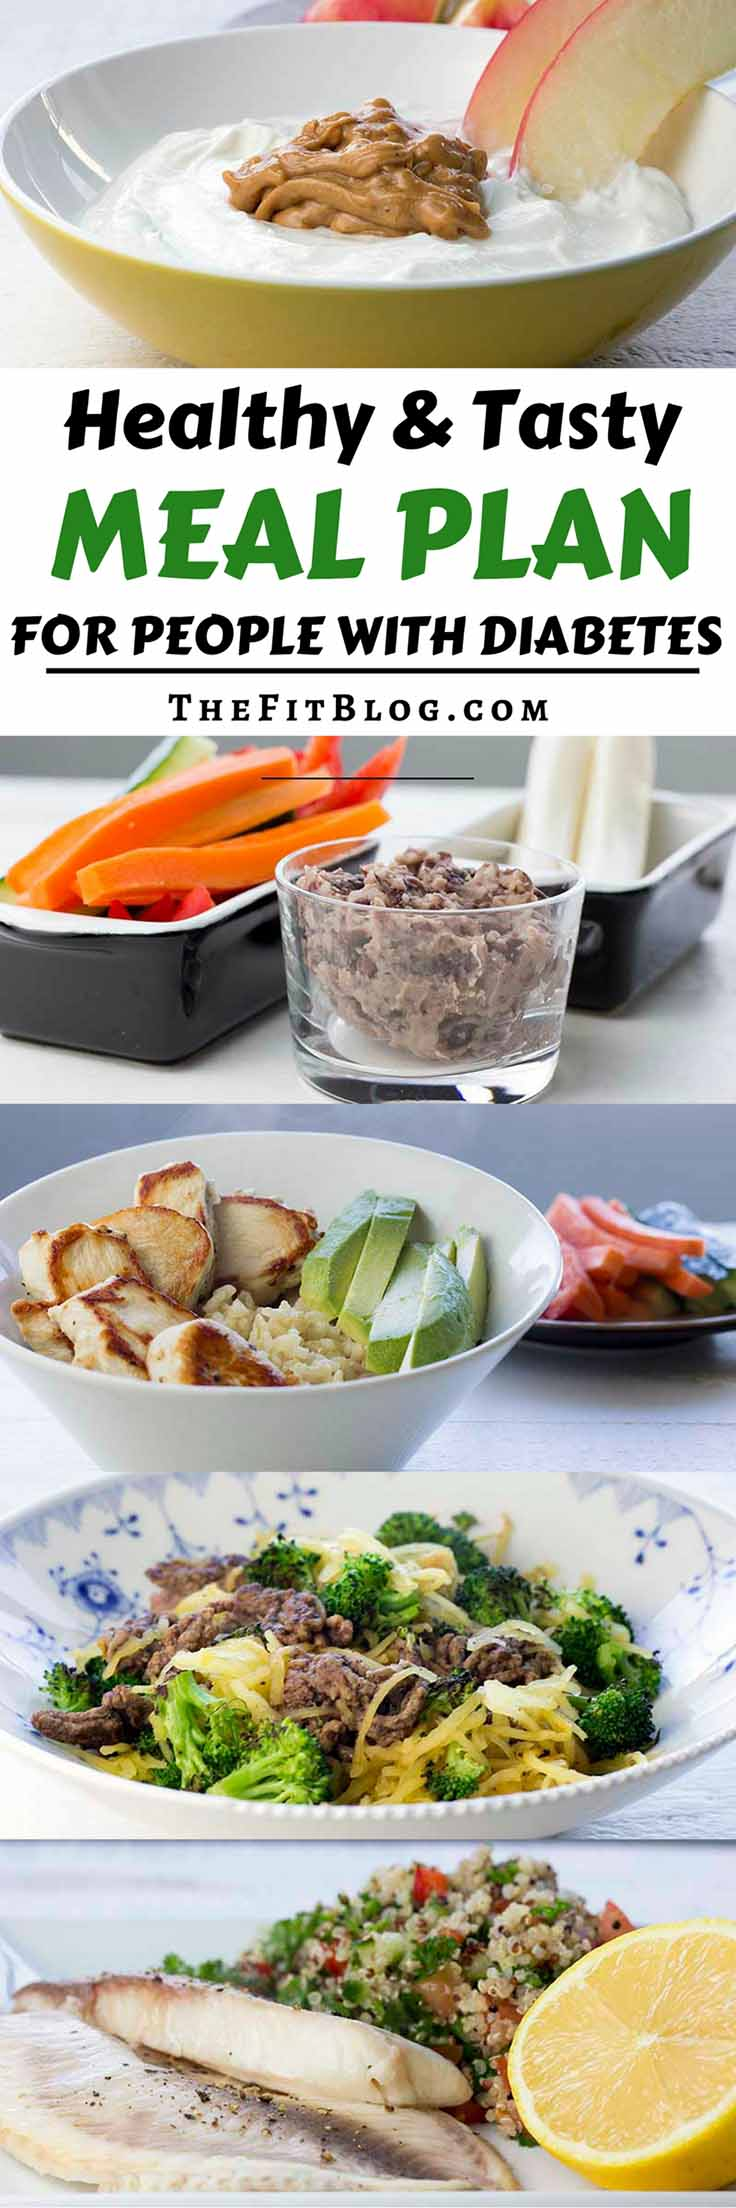 Healthy & Tasty Meal Plan for people with diabetes   high protein   low carb   sugar free   gluten free   diabetes friendly  